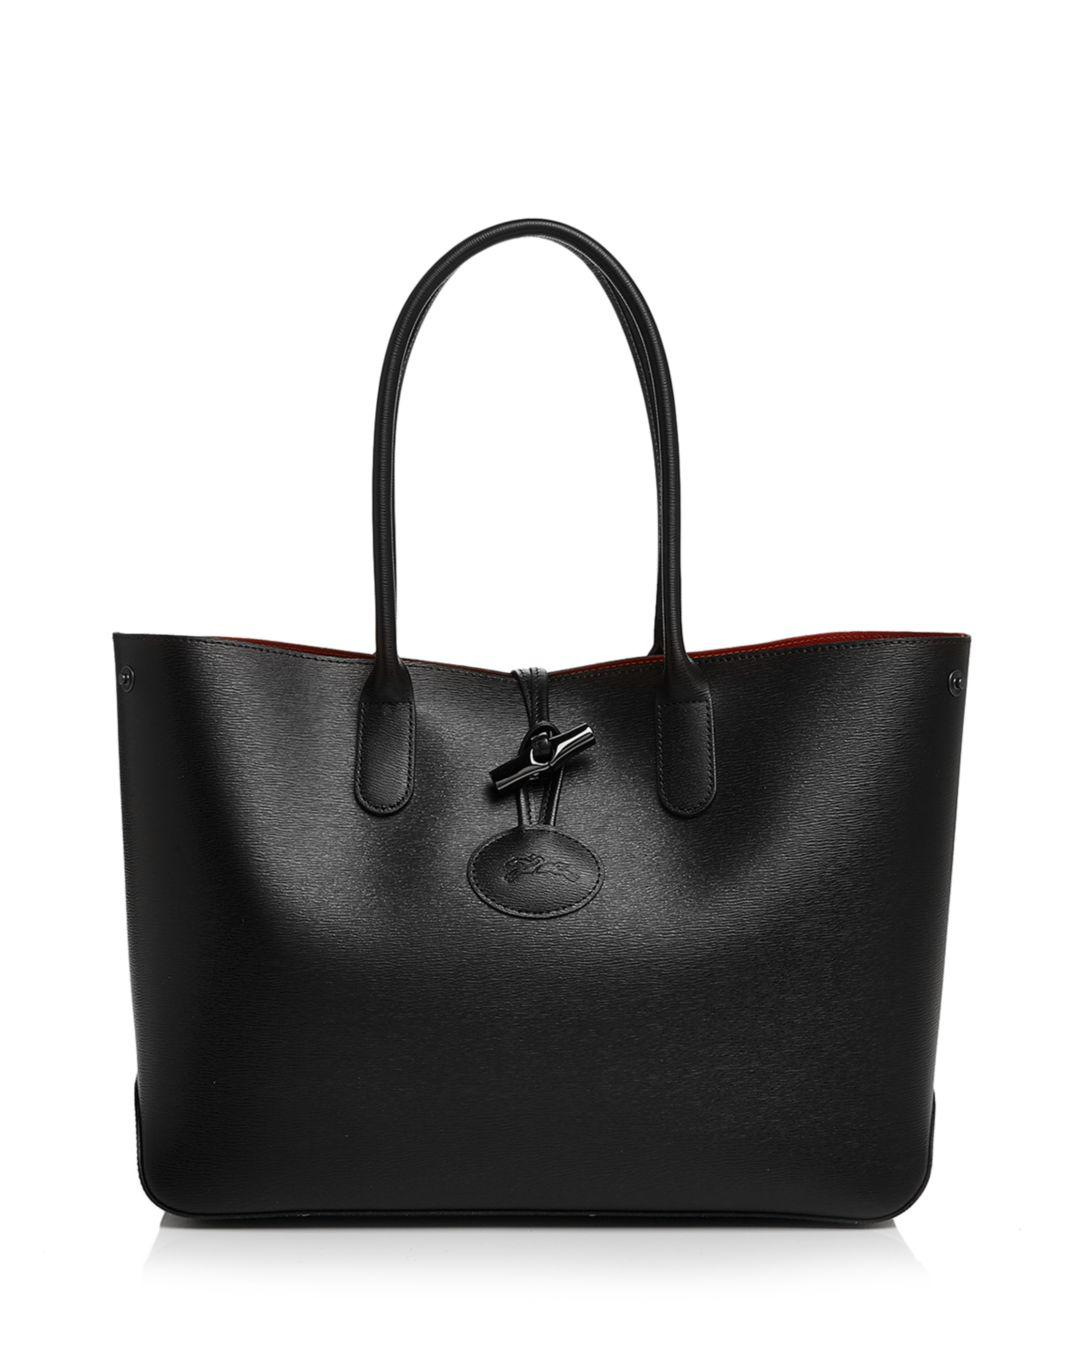 Lyst - Longchamp Roseau Leather Tote in Black - Save 24% 7784558cf1913